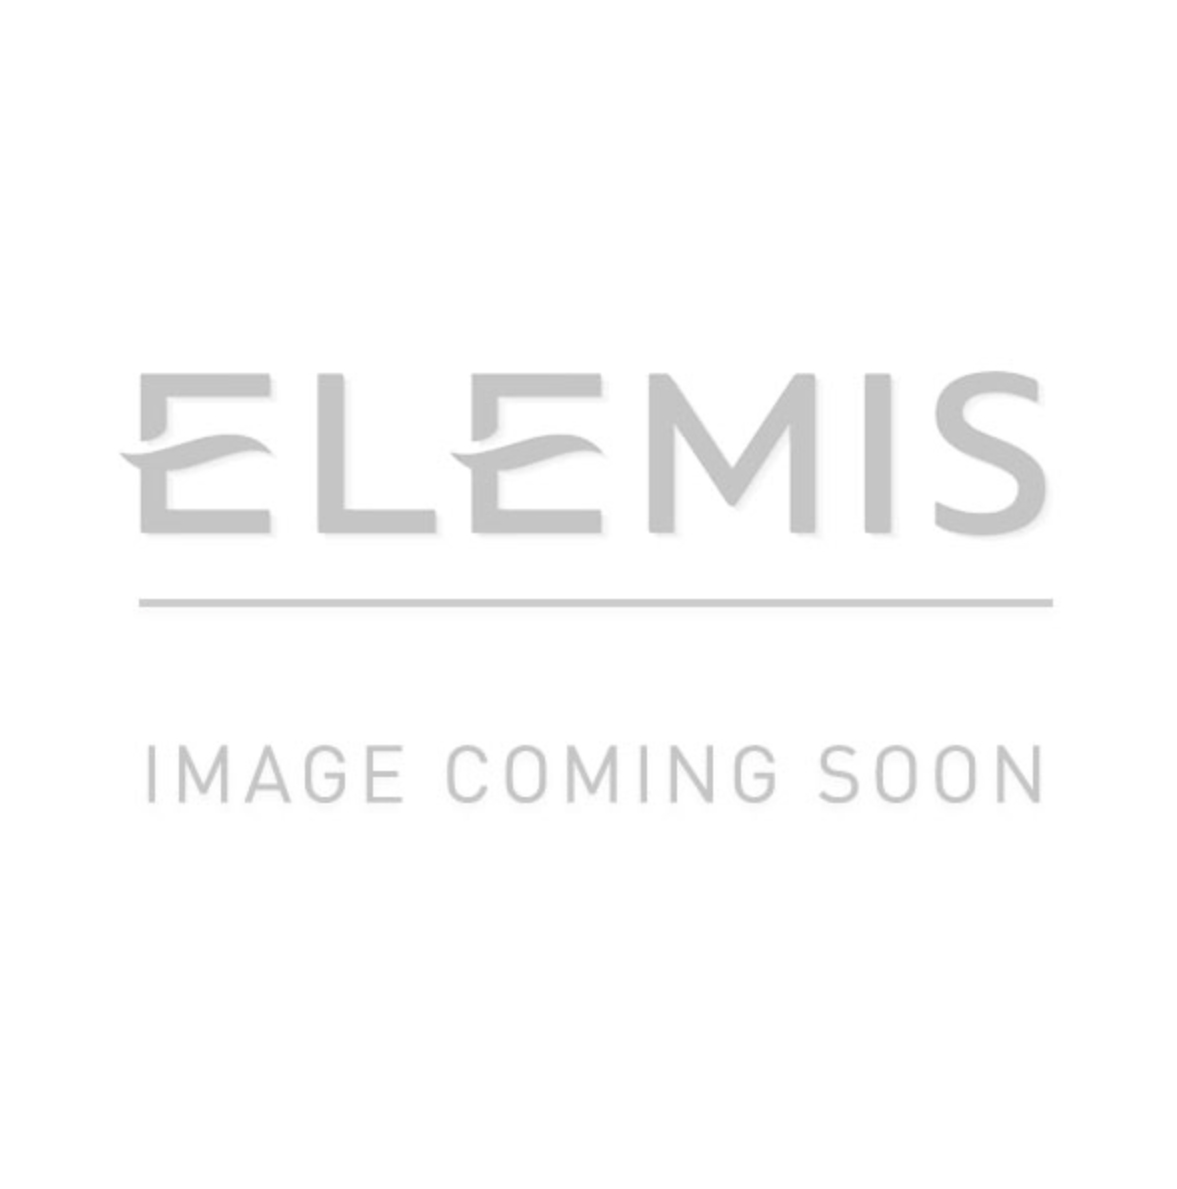 Elemis Skin Care Products